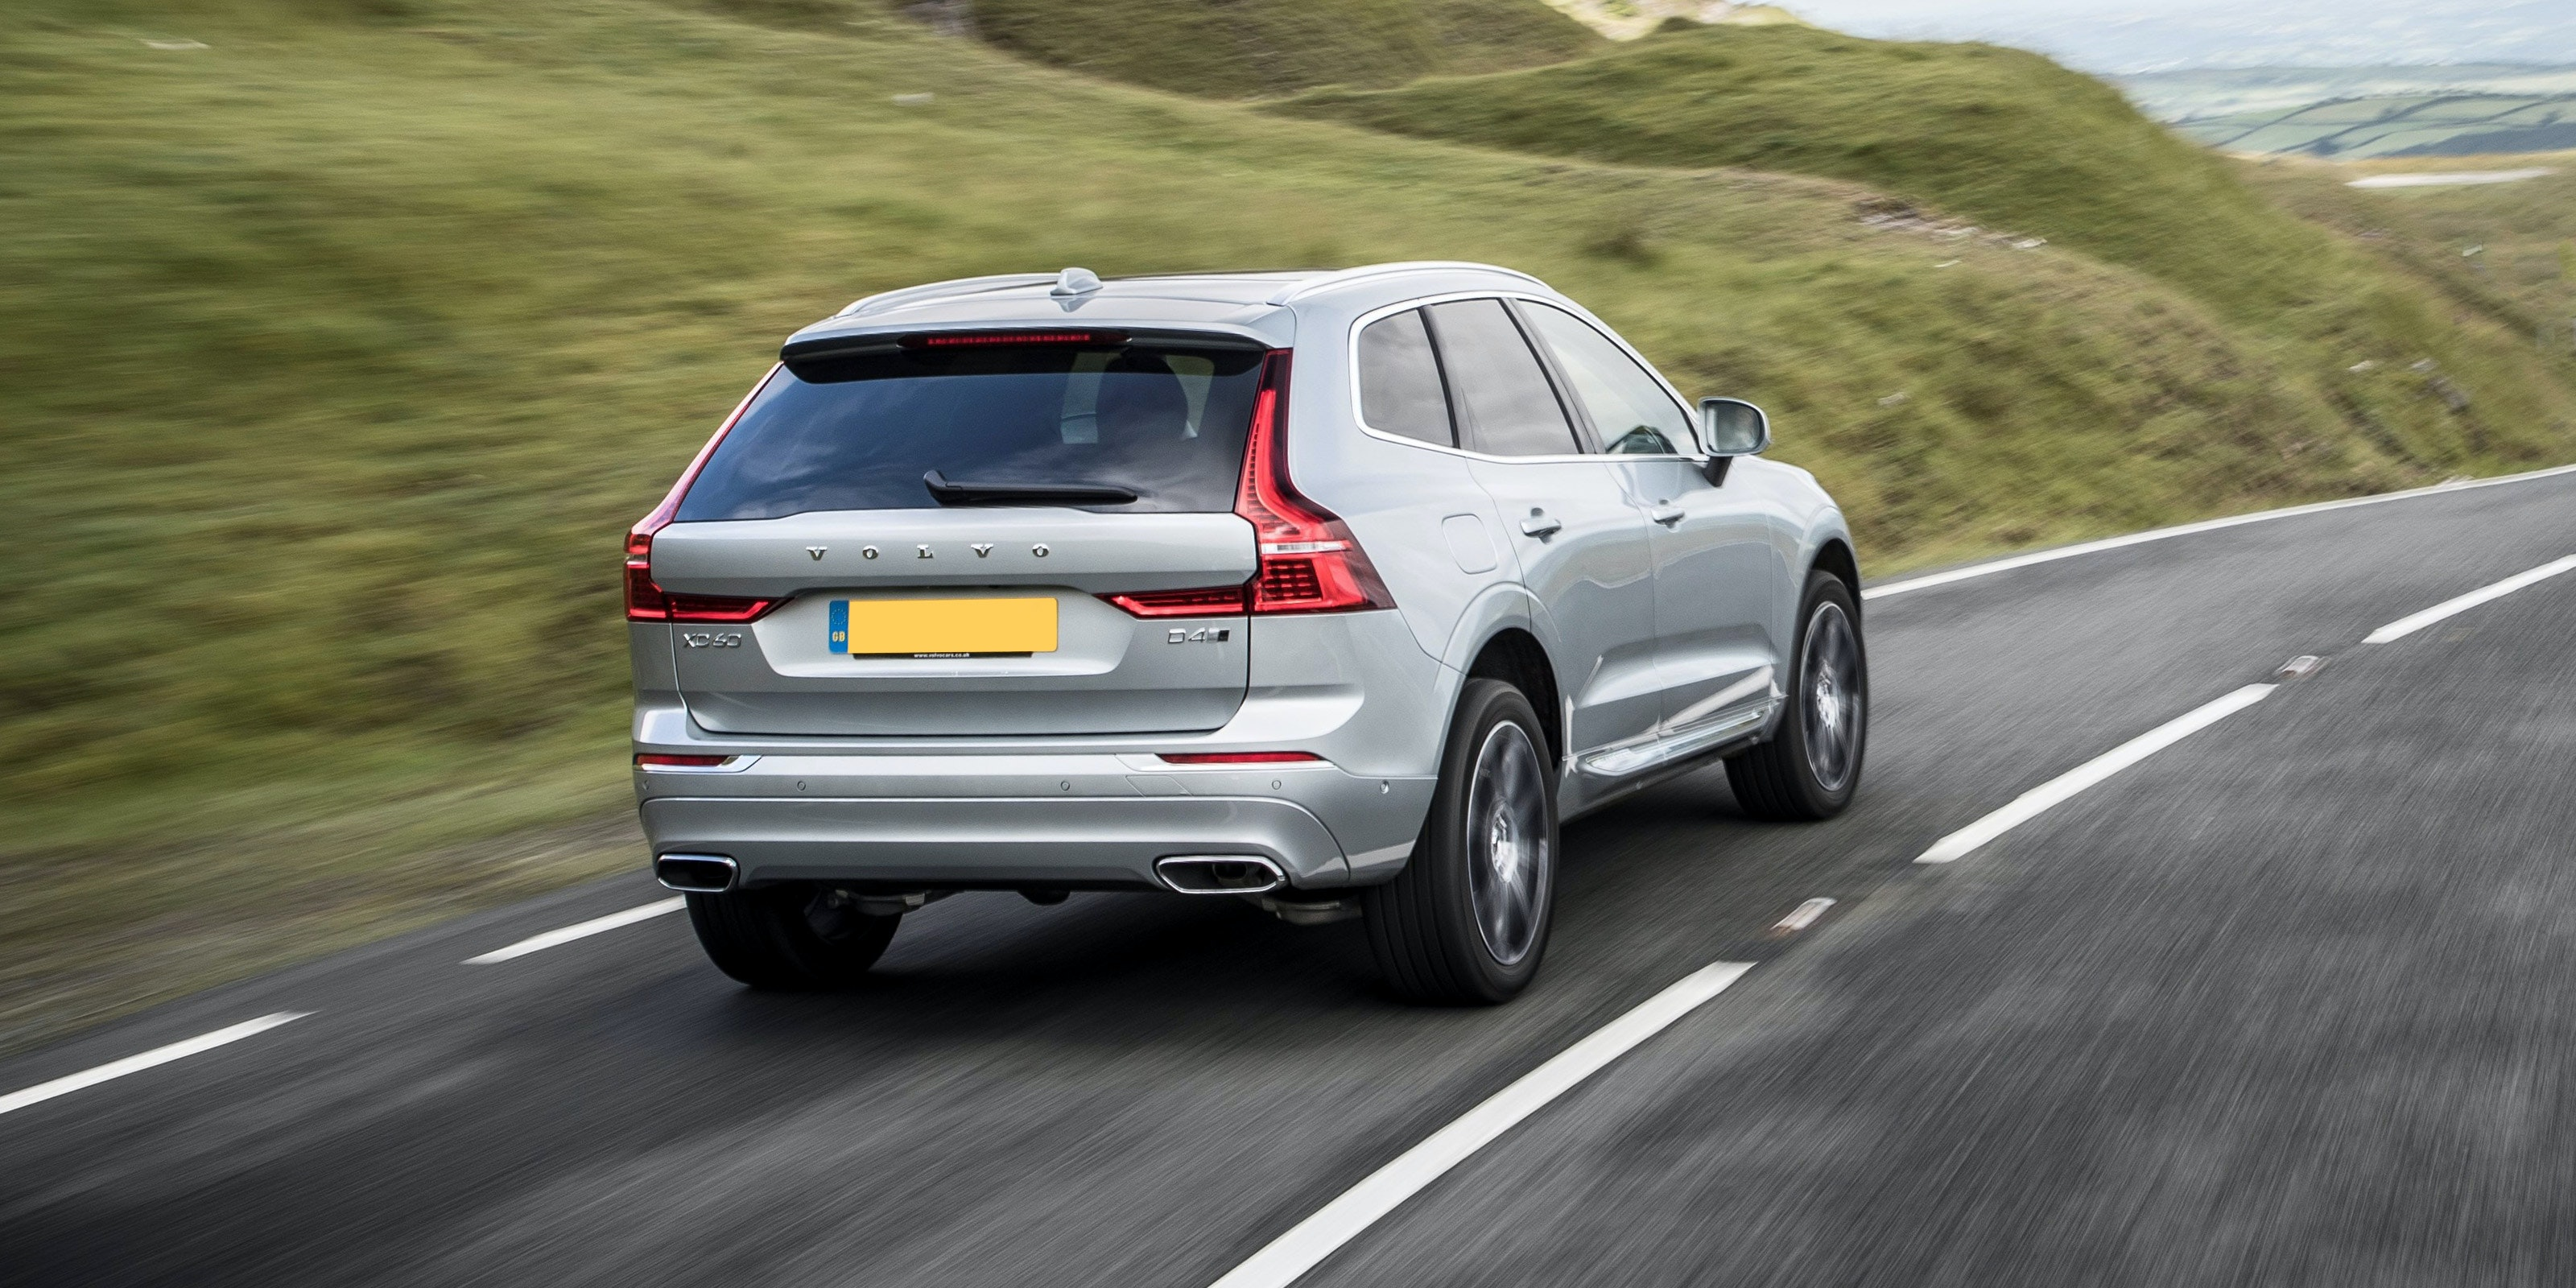 It's easy to see out of the XC60